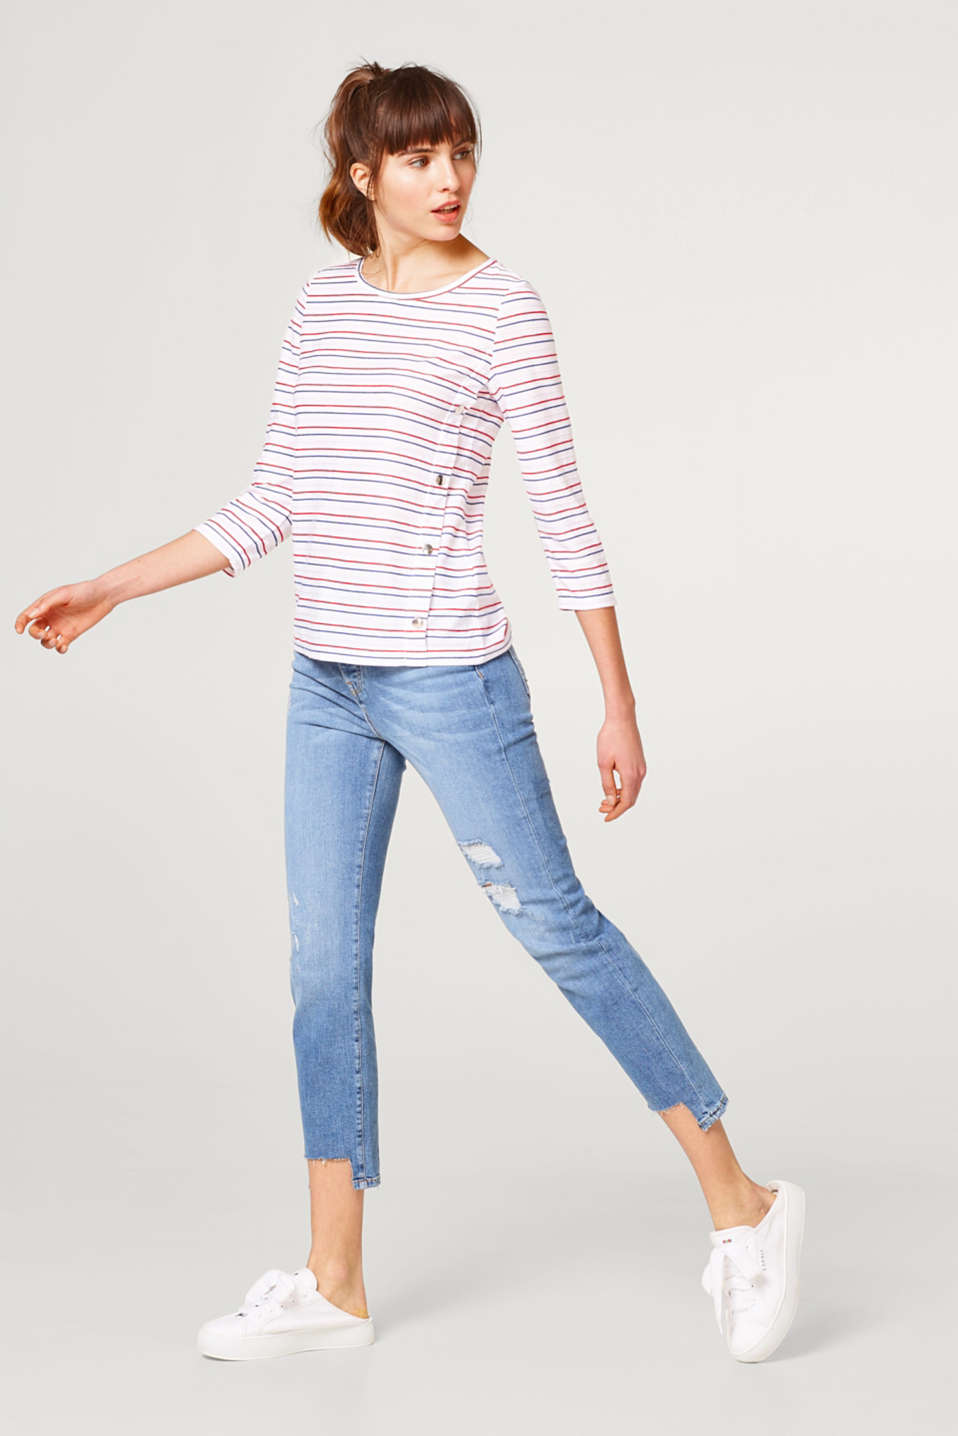 Textured striped top with a decorative button placket